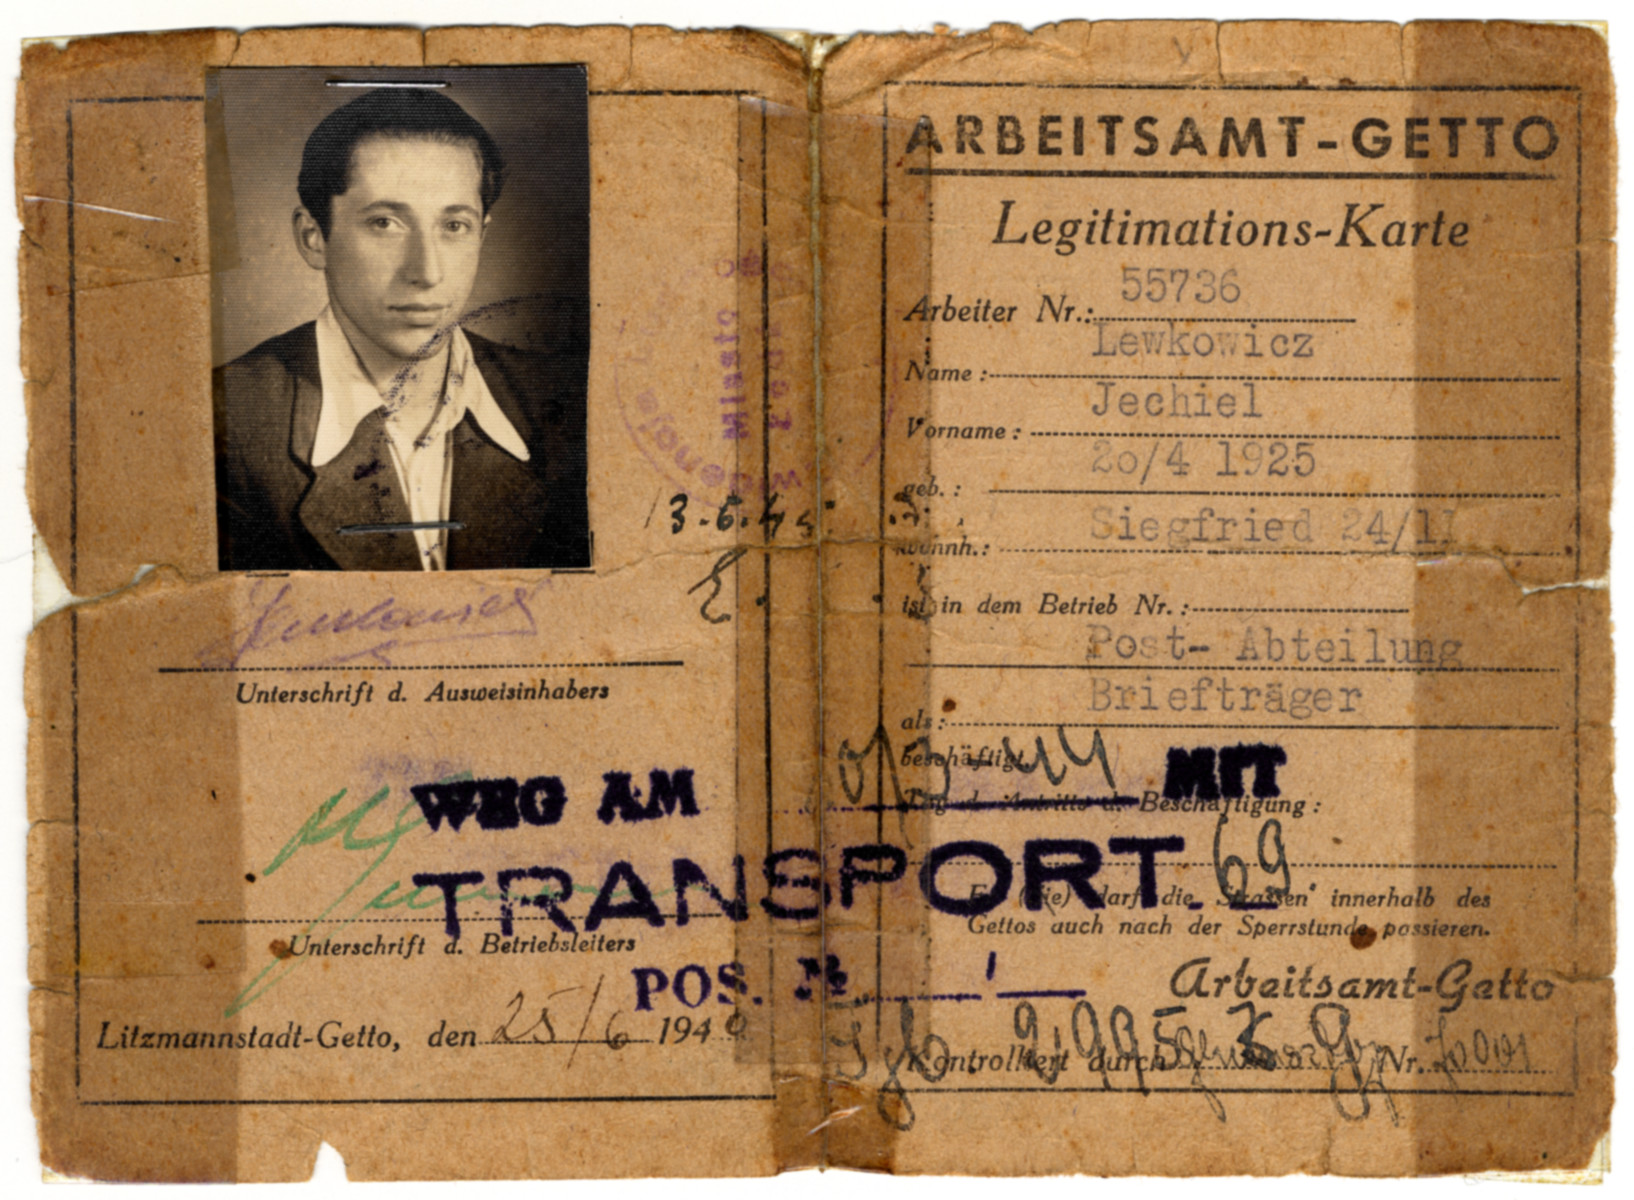 Identification card of Jechiel Lewkowicz.